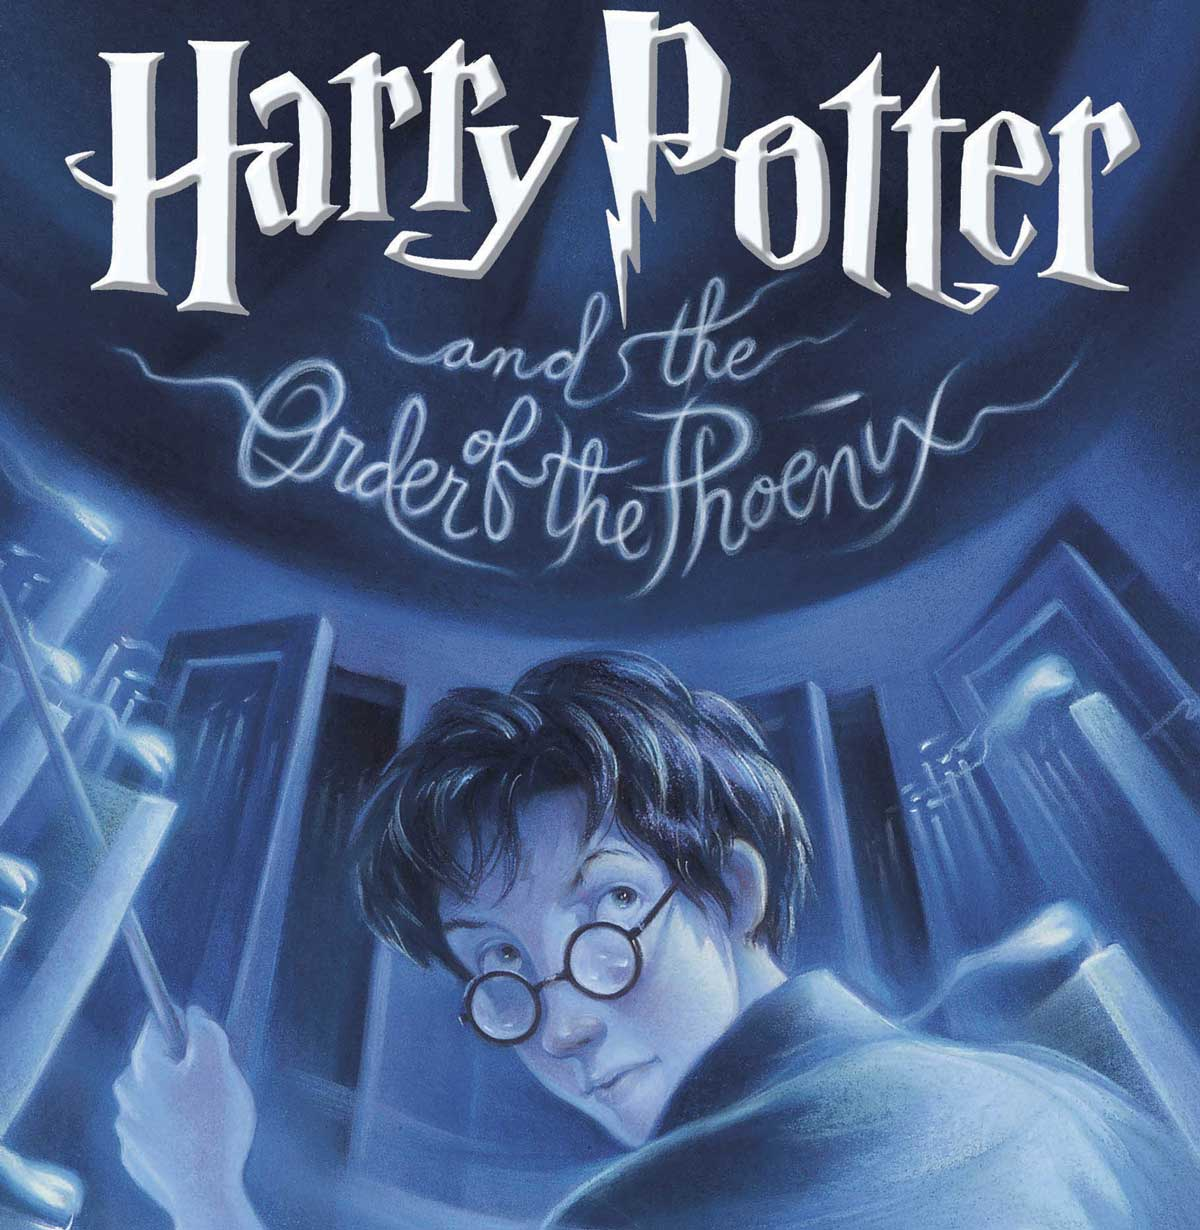 Harry Potter and The Order of Phoenix book cover